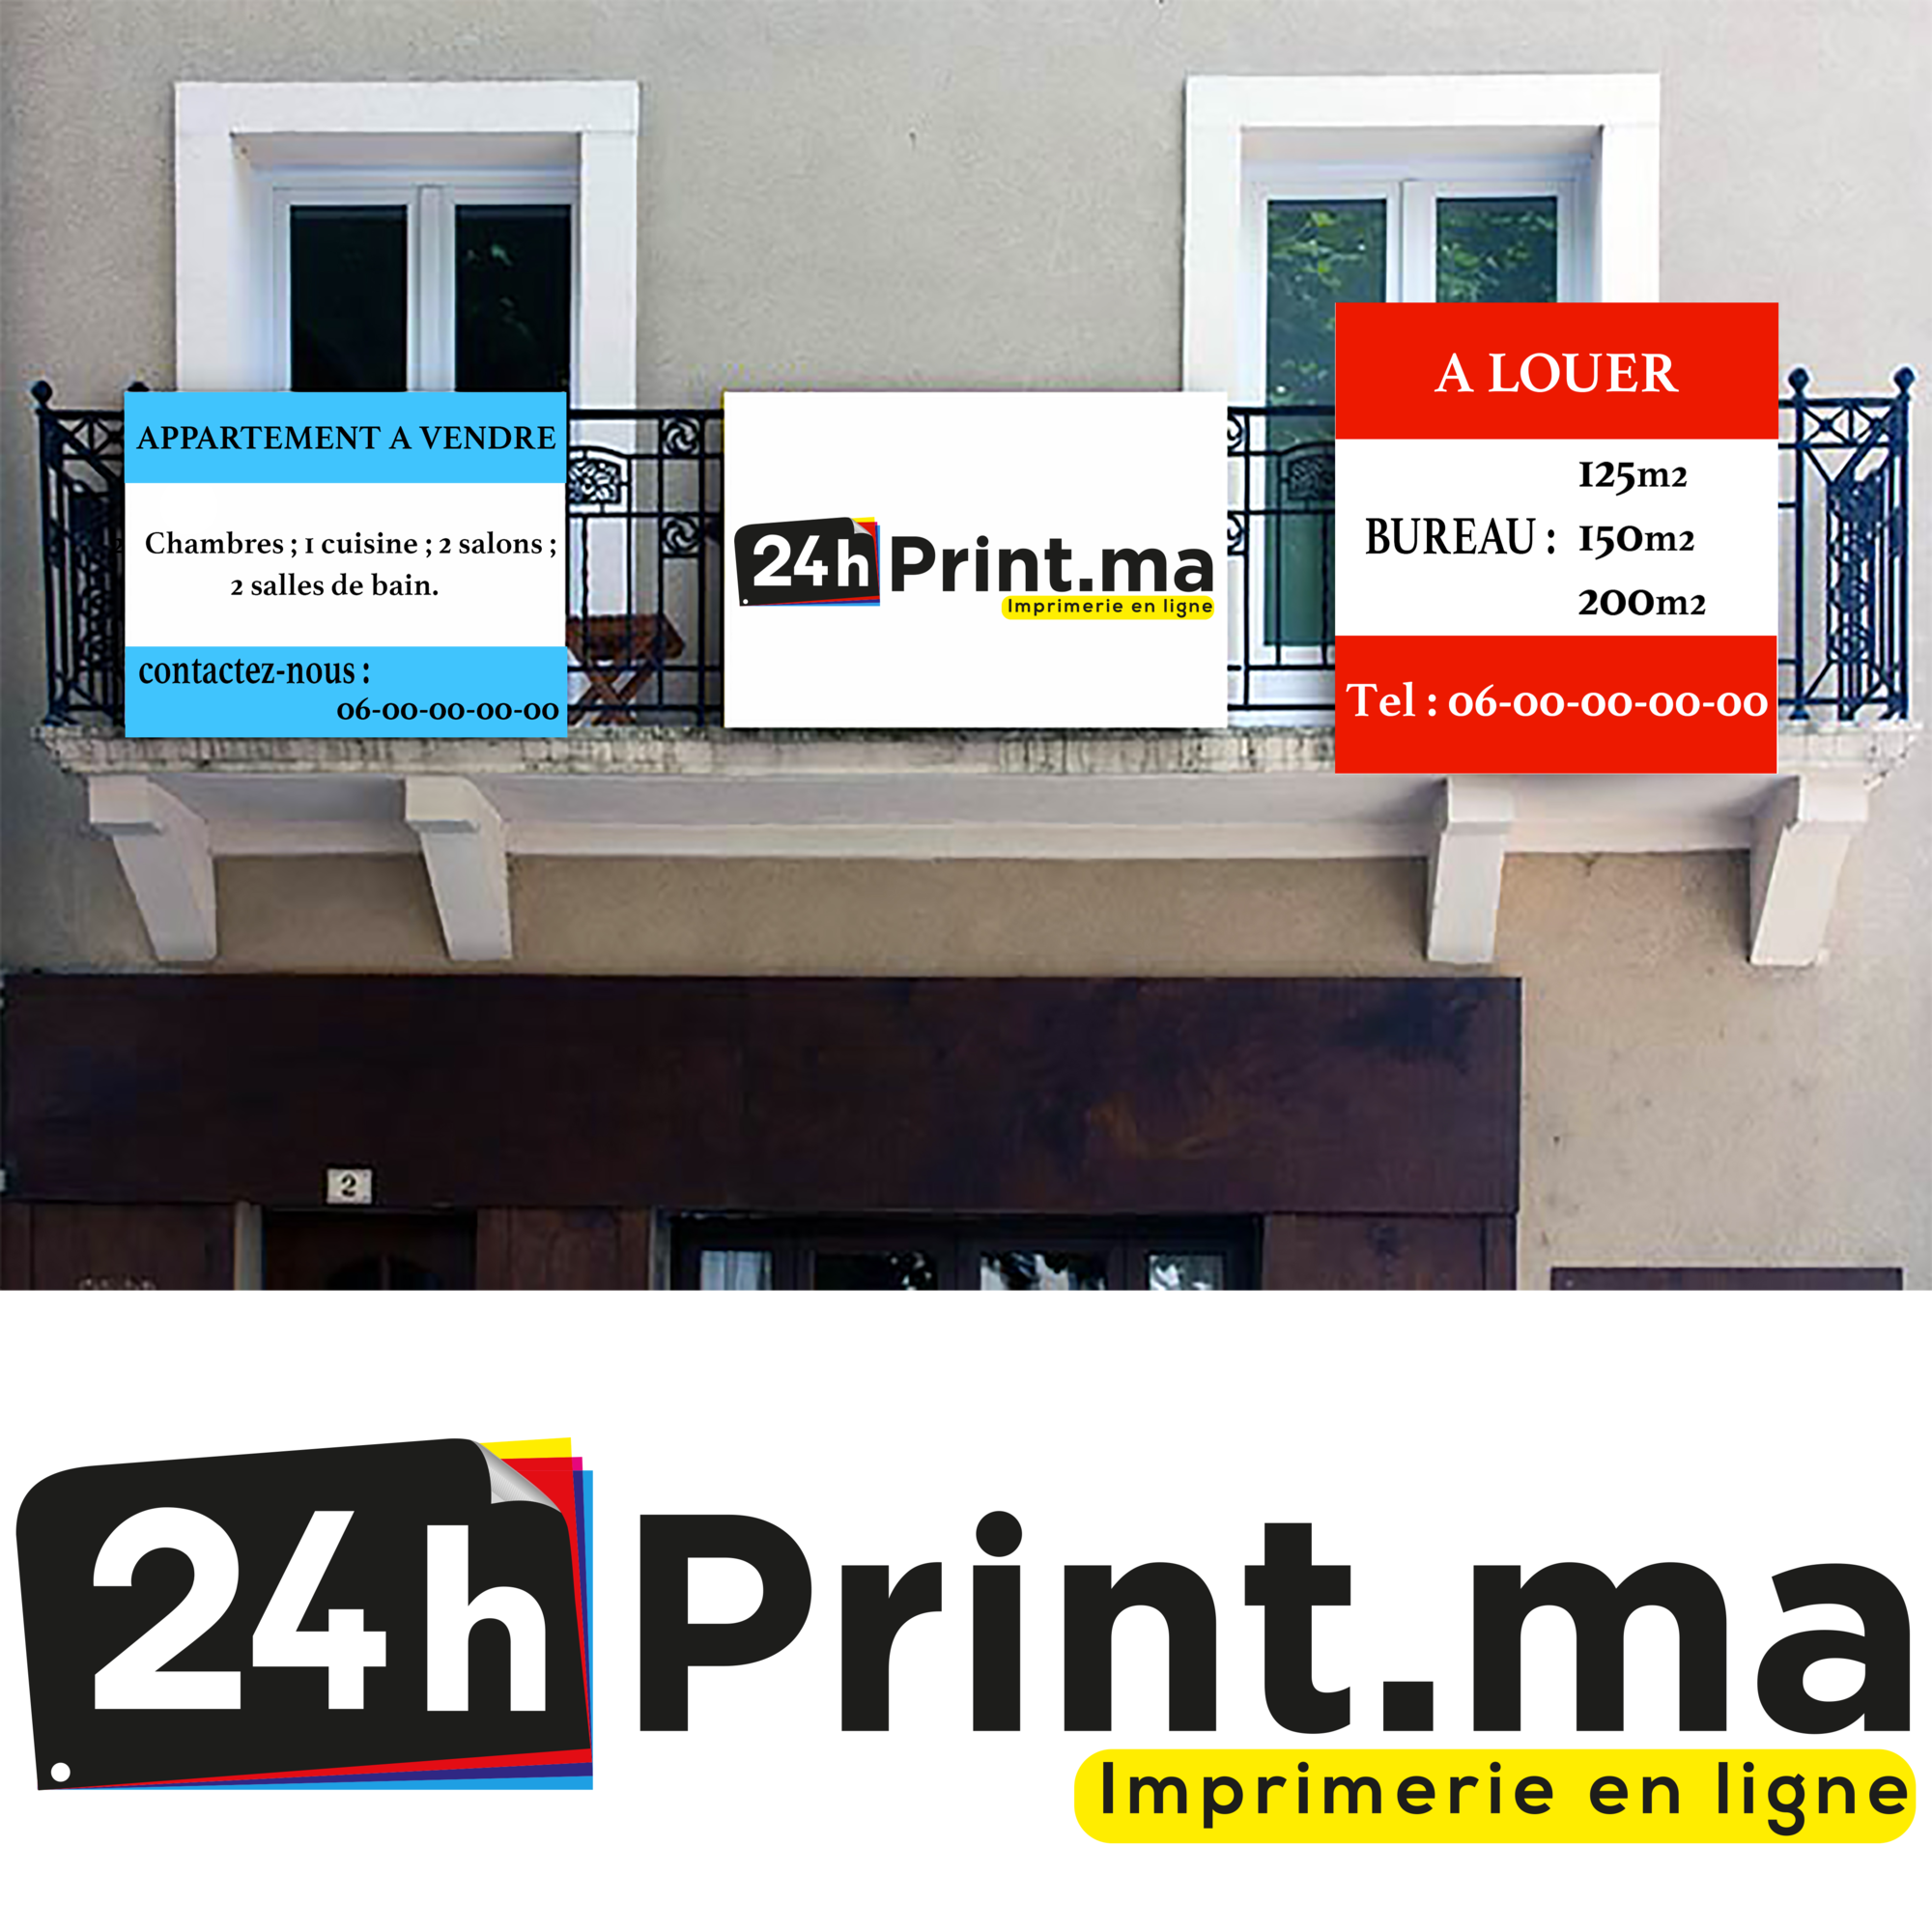 https://www.24hprint.ma/images/products_gallery_images/Plan_de_travail_1_2_92.png